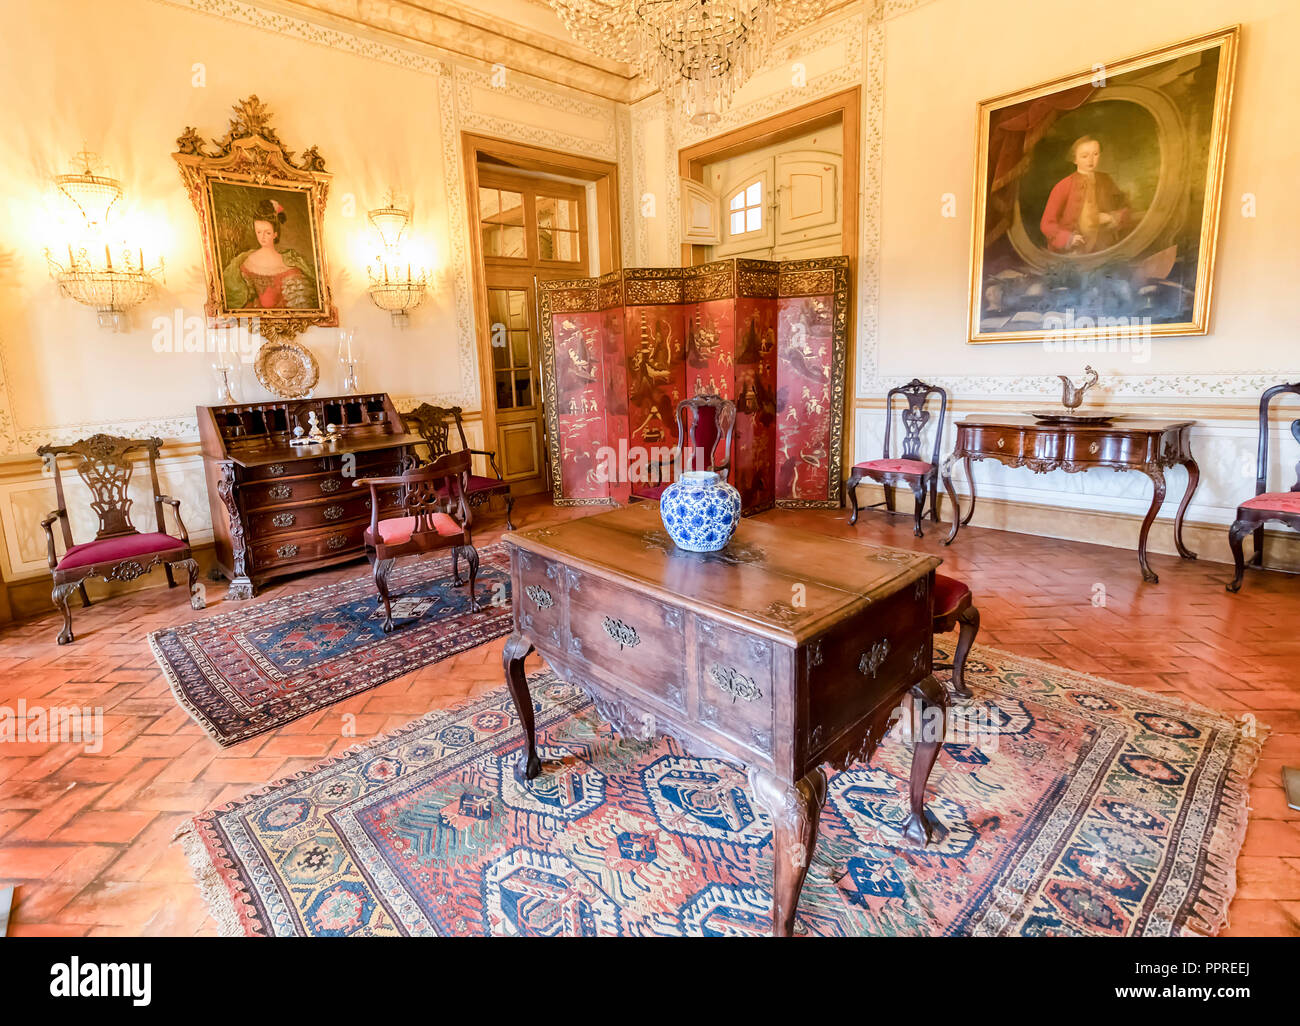 Queluz, Portugal - December 9, 2017: Room Inside of rich decorated Queluz Royal Palace. Formerly used as the Summer residence by the Portuguese royal  Stock Photo